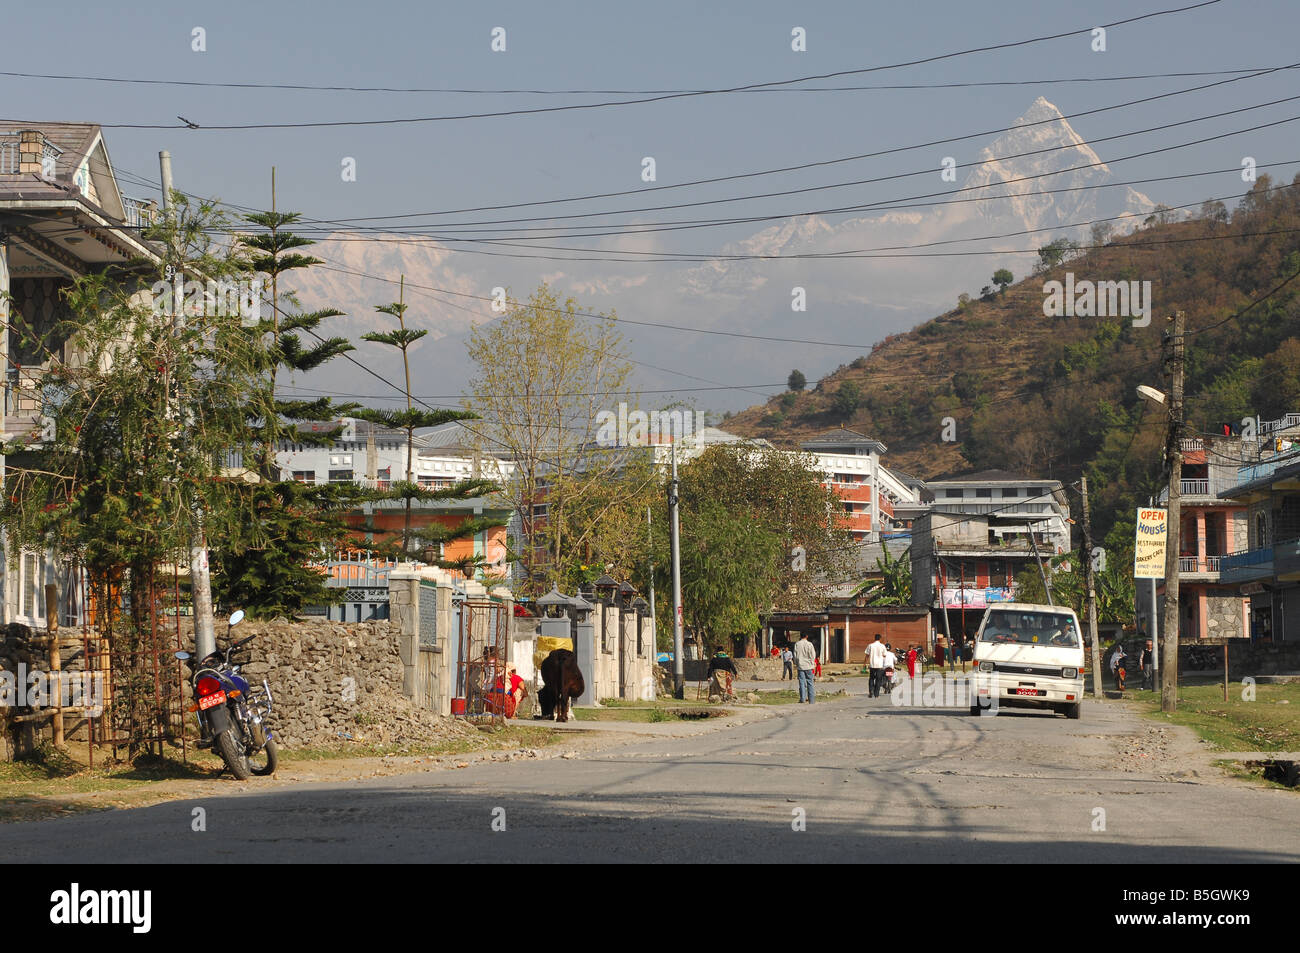 Pokhara with Annapurna fishtail in the background - Stock Image